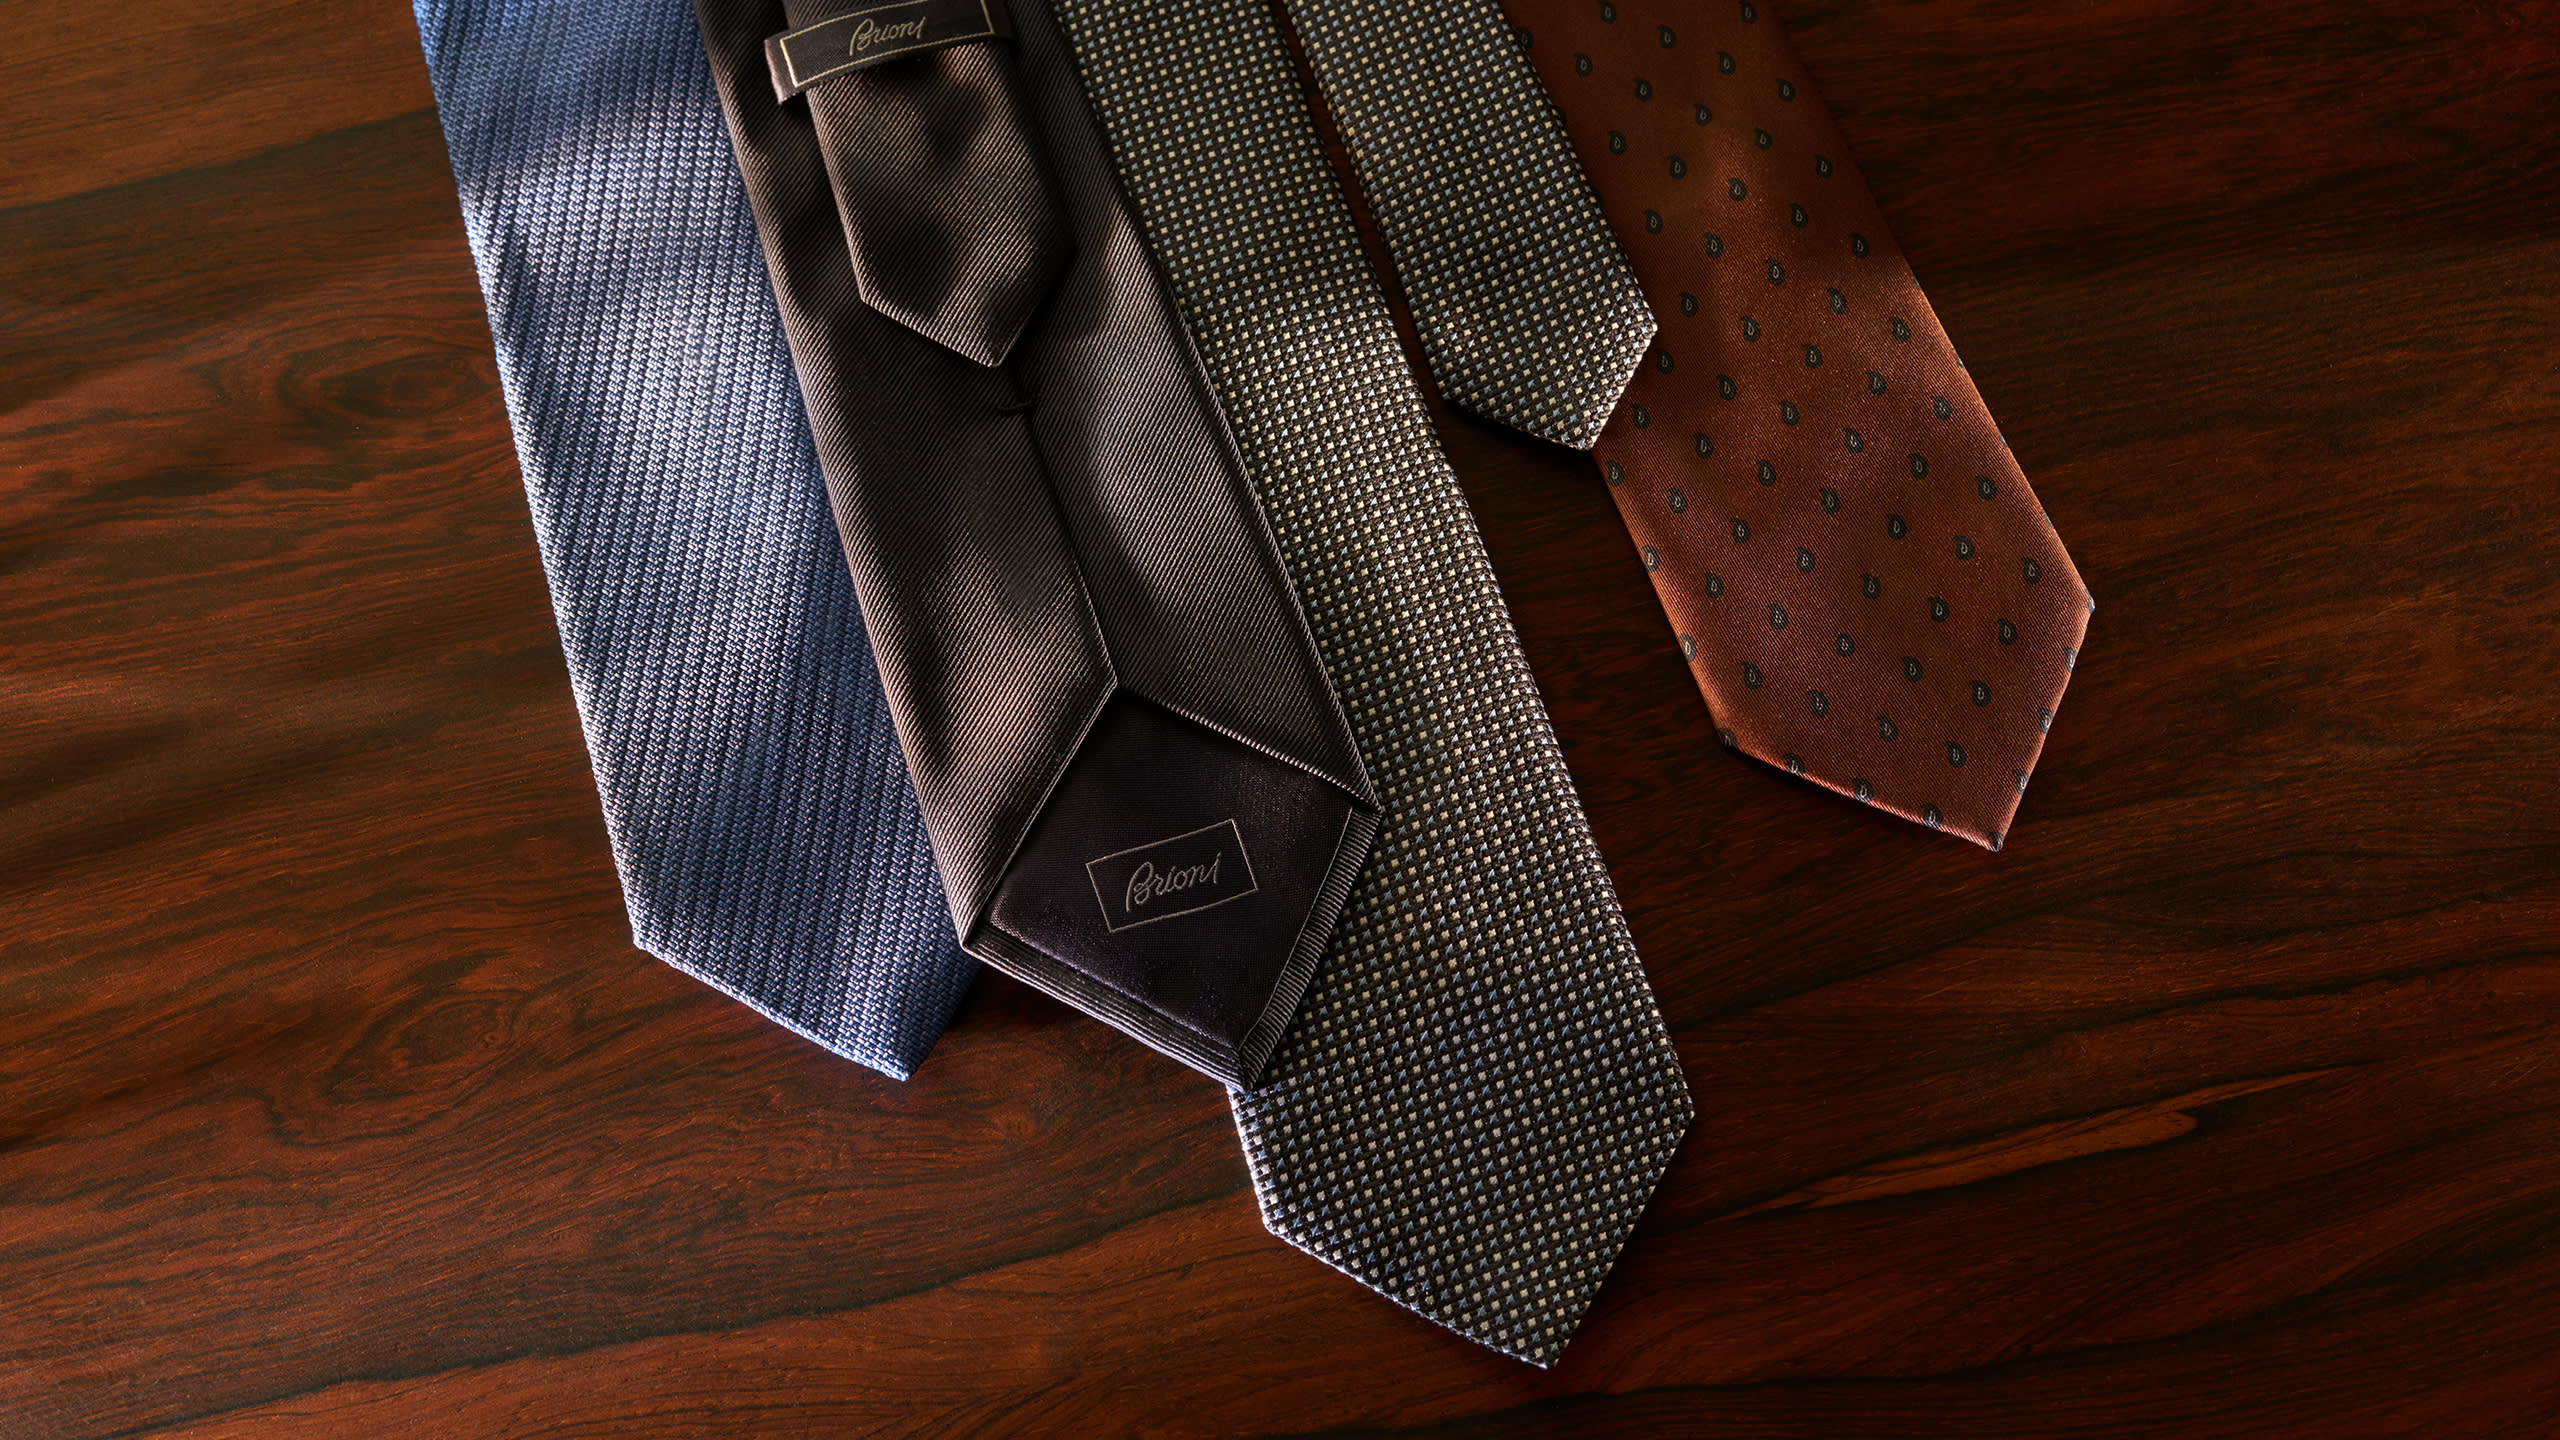 Four Brioni made-to-order ties in different fabrics and patterns